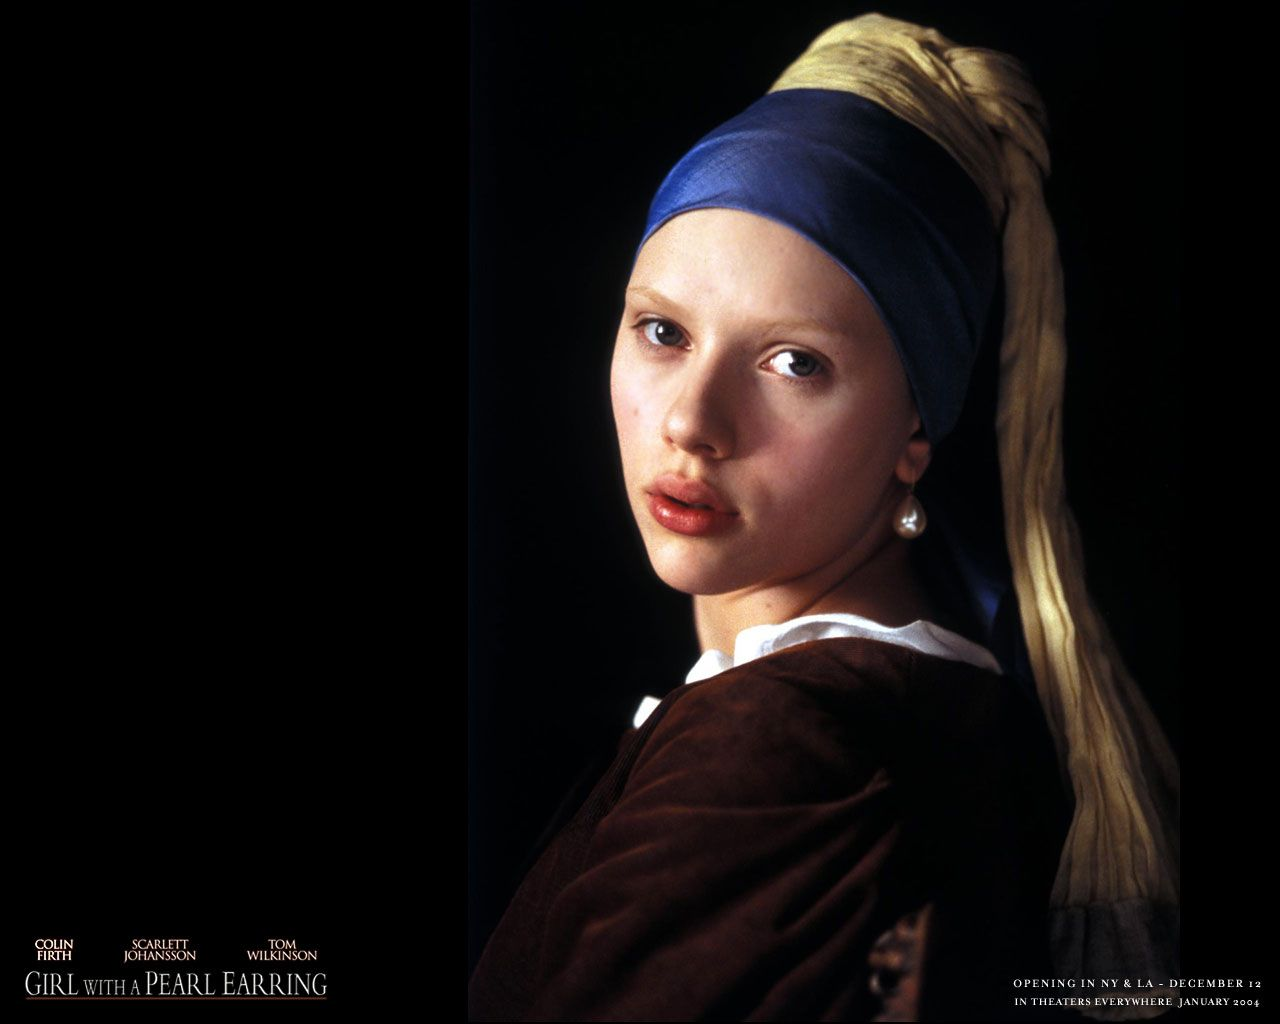 johannes vermeer girl the pearl earring halloween costume johannes vermeer girl the pearl earring halloween costume